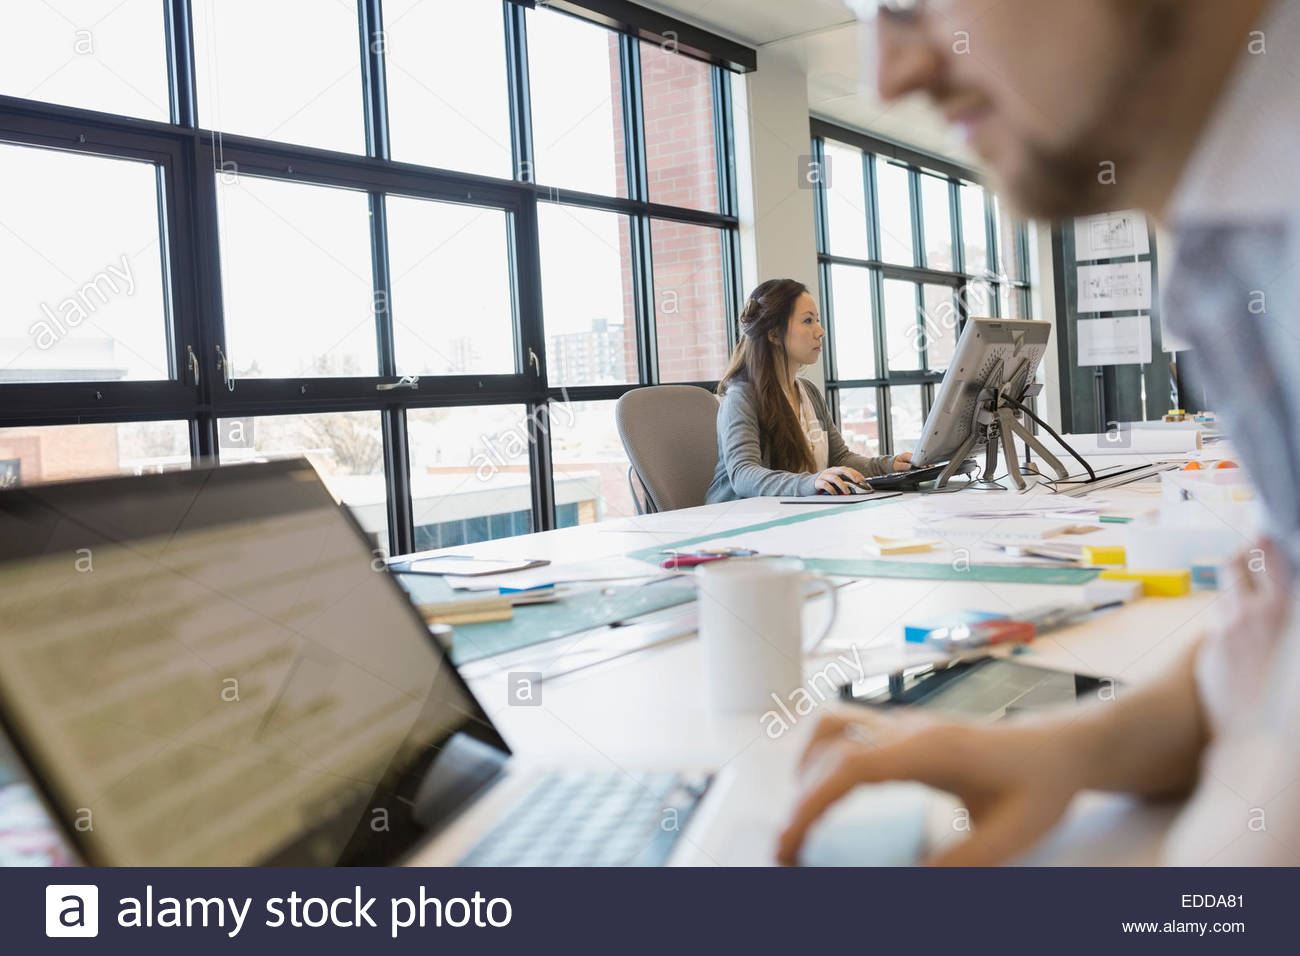 Business people working at computers in office - Stock Image